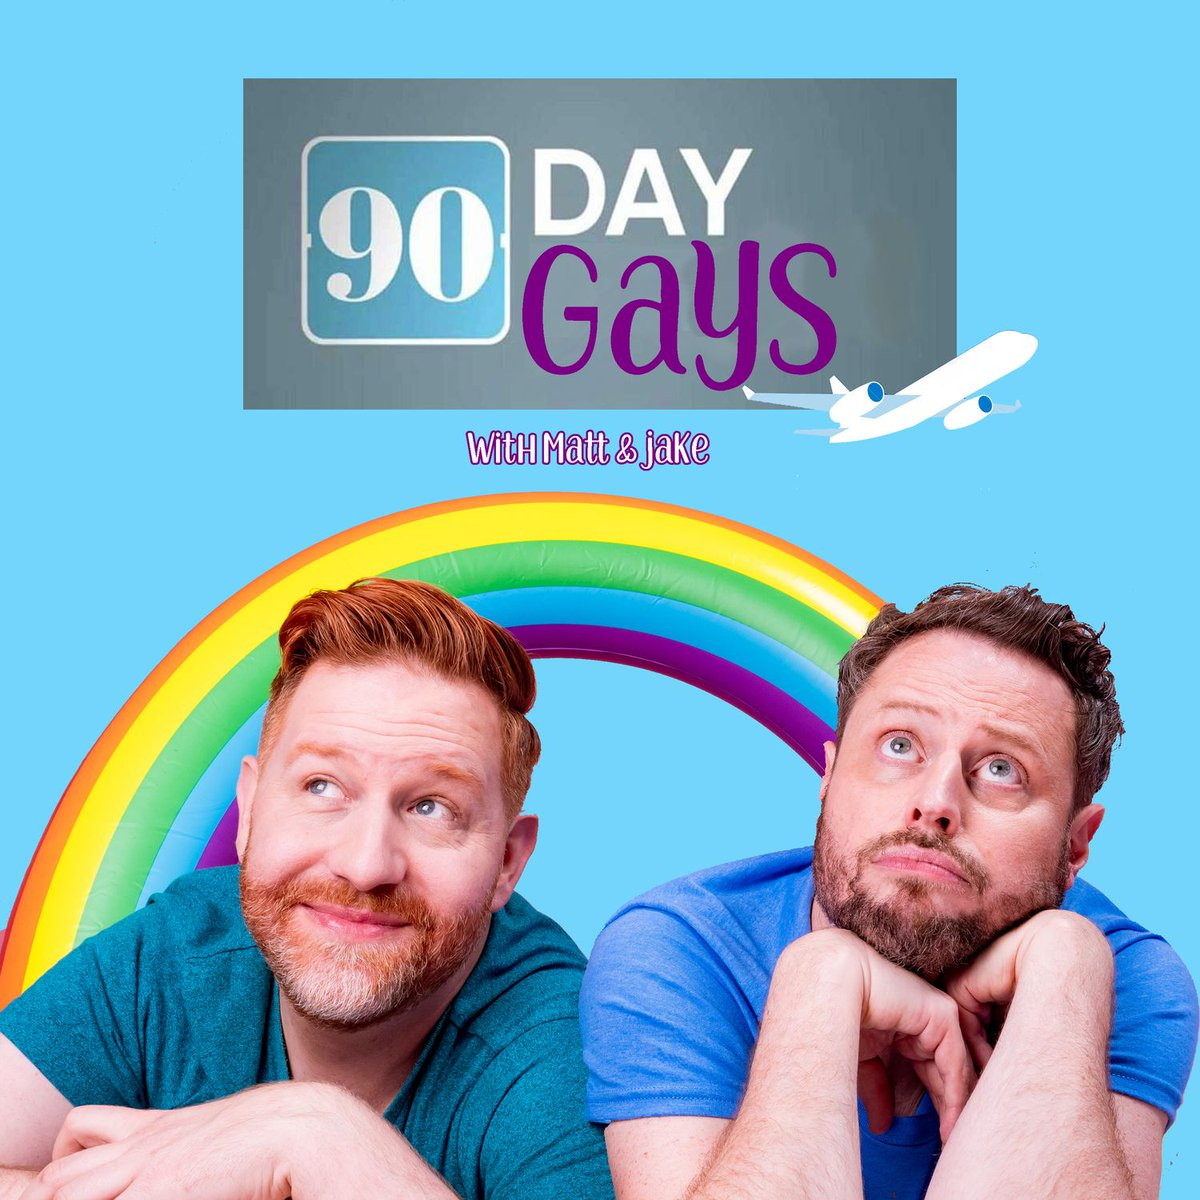 Our first ever May-gasode now live. Enjoy 2 hrs of @90DayGays! These episodes are *NOT* SFW.     #90dayfiance #90dayfiancebeforethe90days  #loveisblind #loveisblindnetflix #toohottohandle #marriedatfirstsight #MAFS #Netflix #TLC #LaborofLove